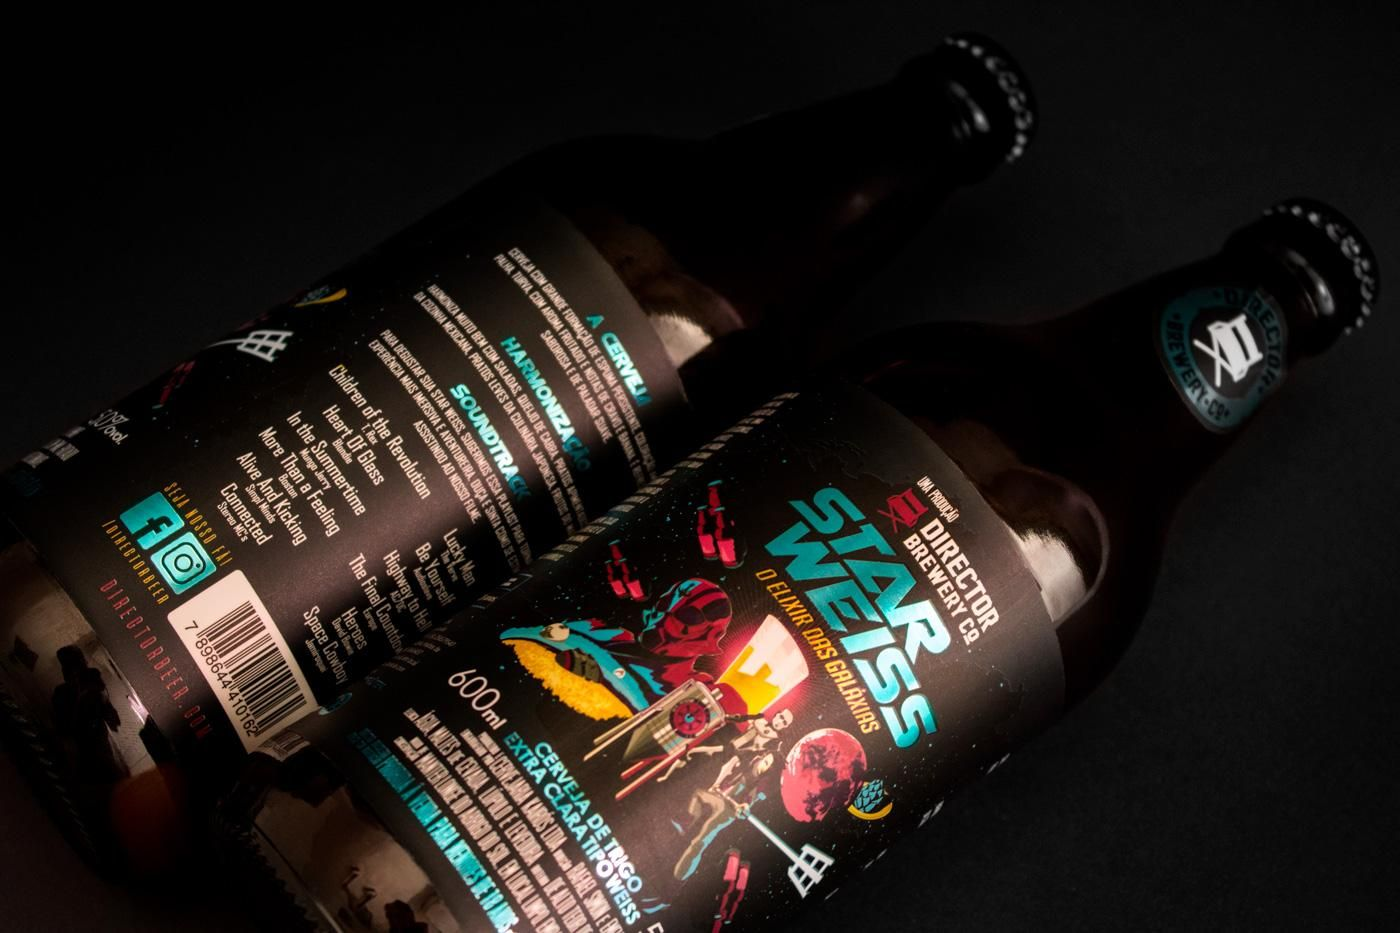 Movie buffs are sure to love this filminspired craft beer